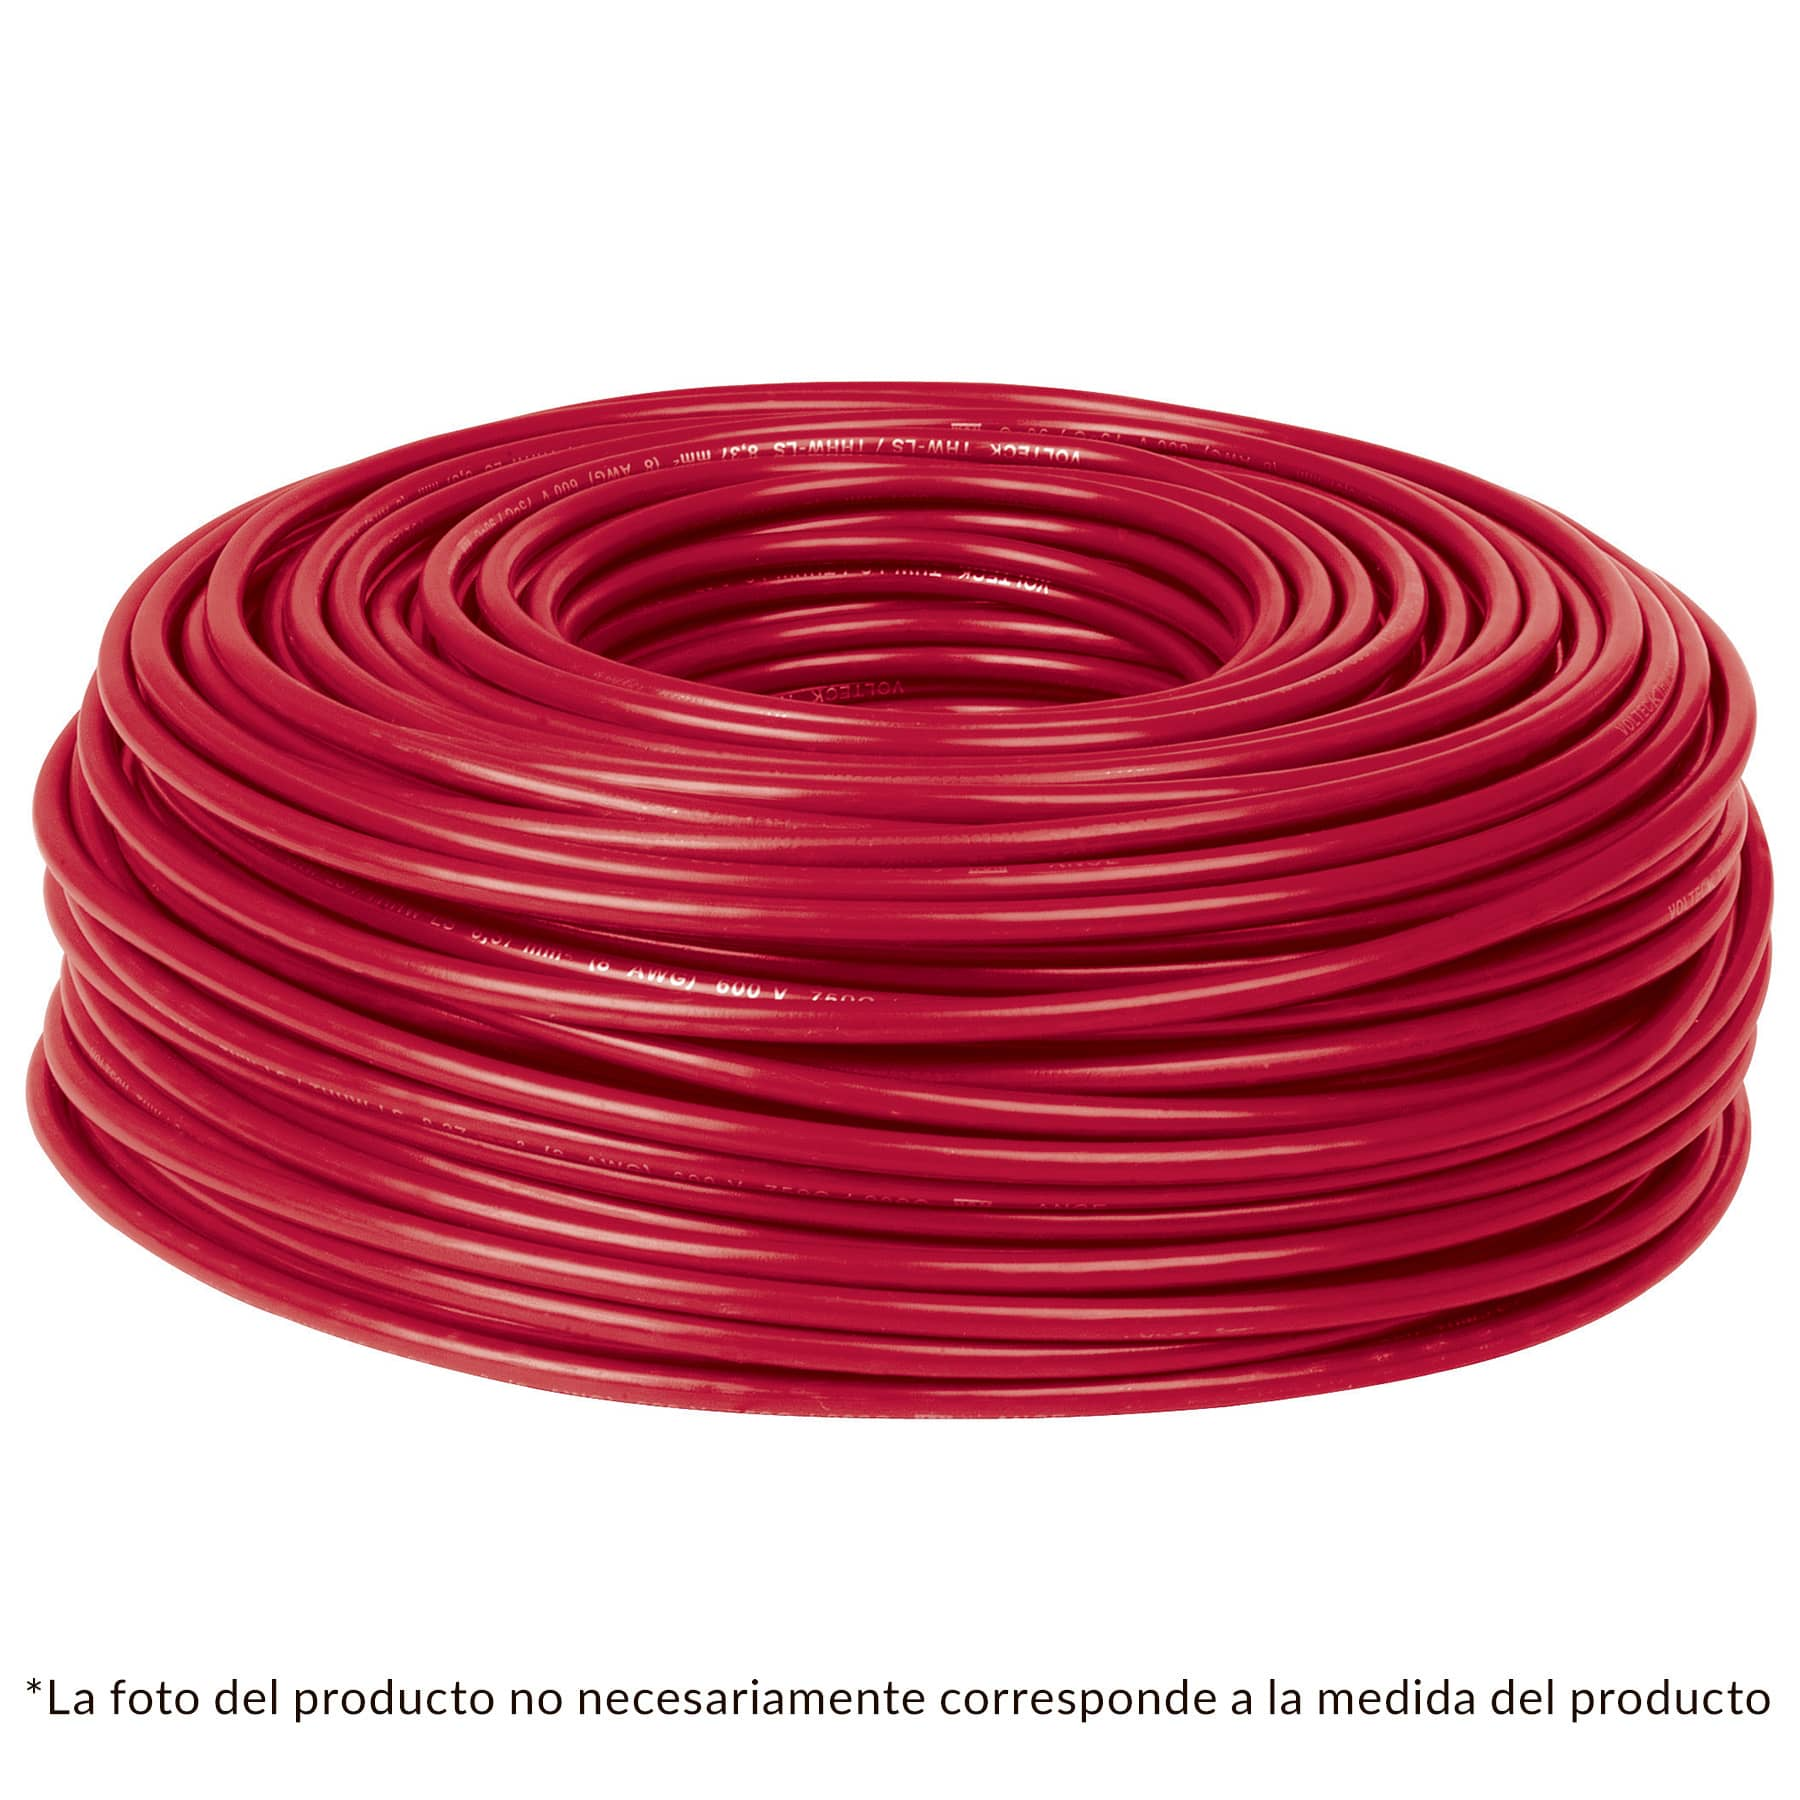 Cable THHW-LS, 12 AWG, color rojo rollo 100 m